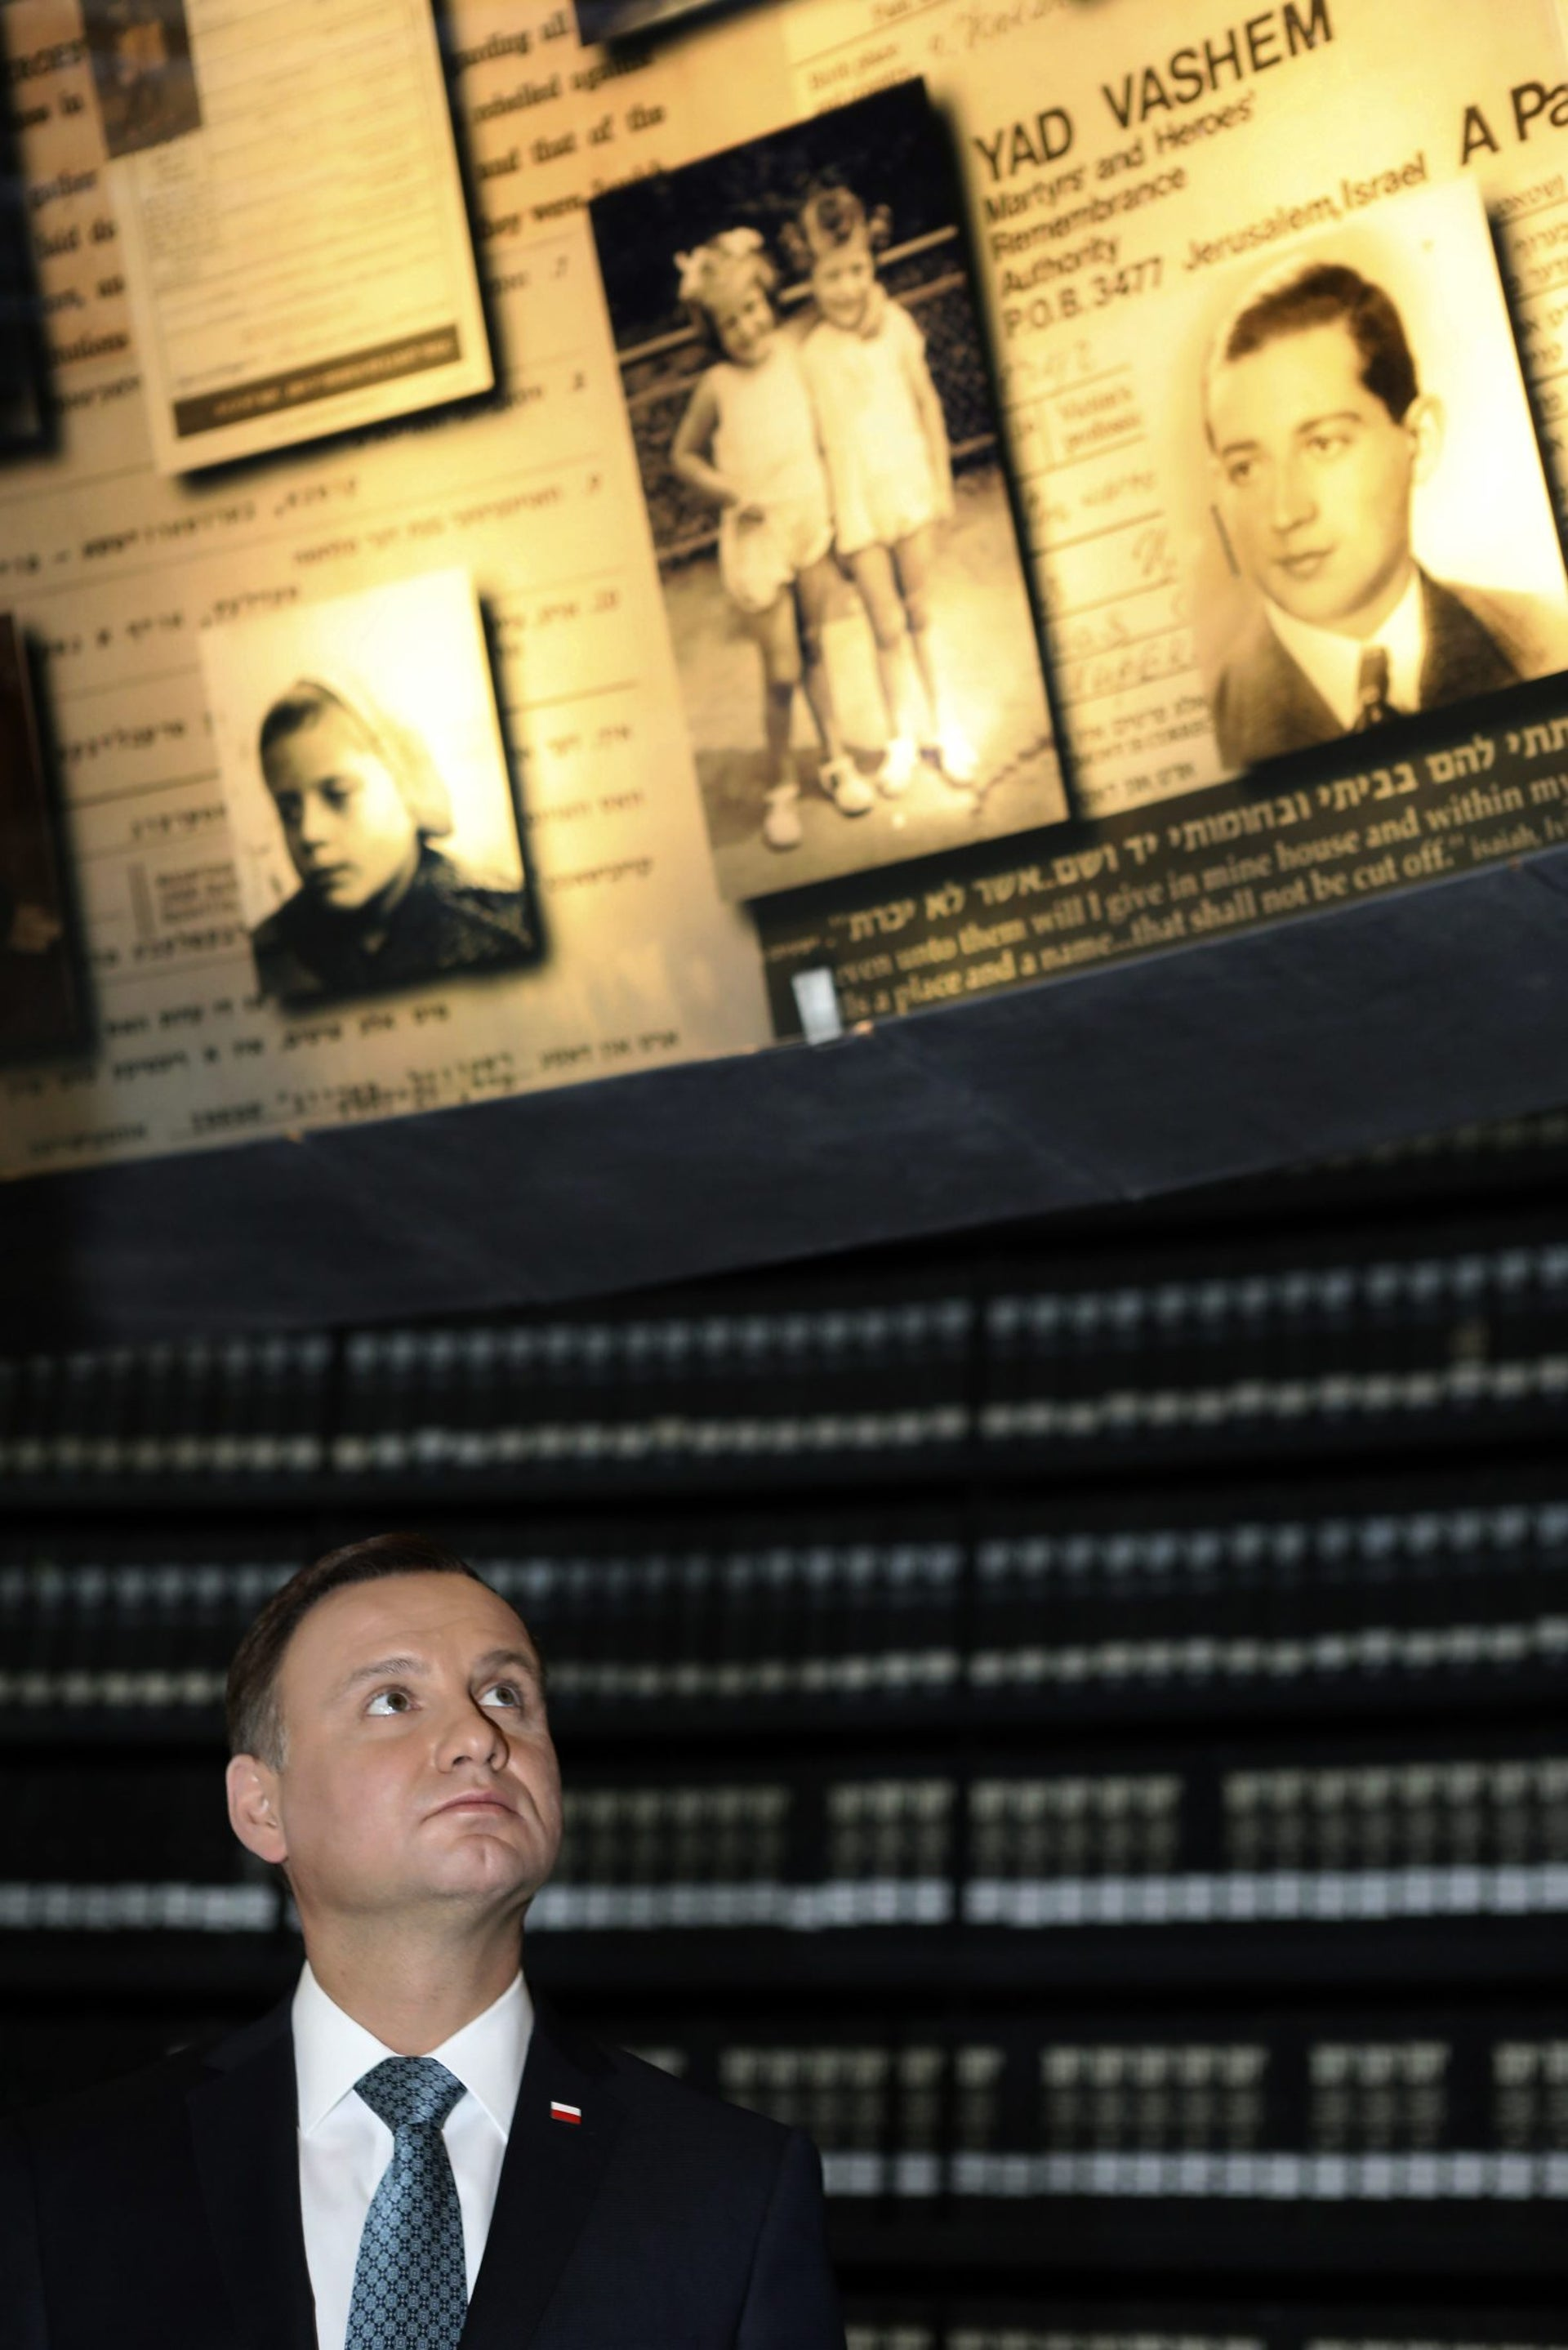 Poland's President Andrzej Duda looks at pictures of Jews killed during the Holocaust, in the Hall of Names at Yad Vashem Holocaust Museum in Jerusalem, Jan. 17, 2017.